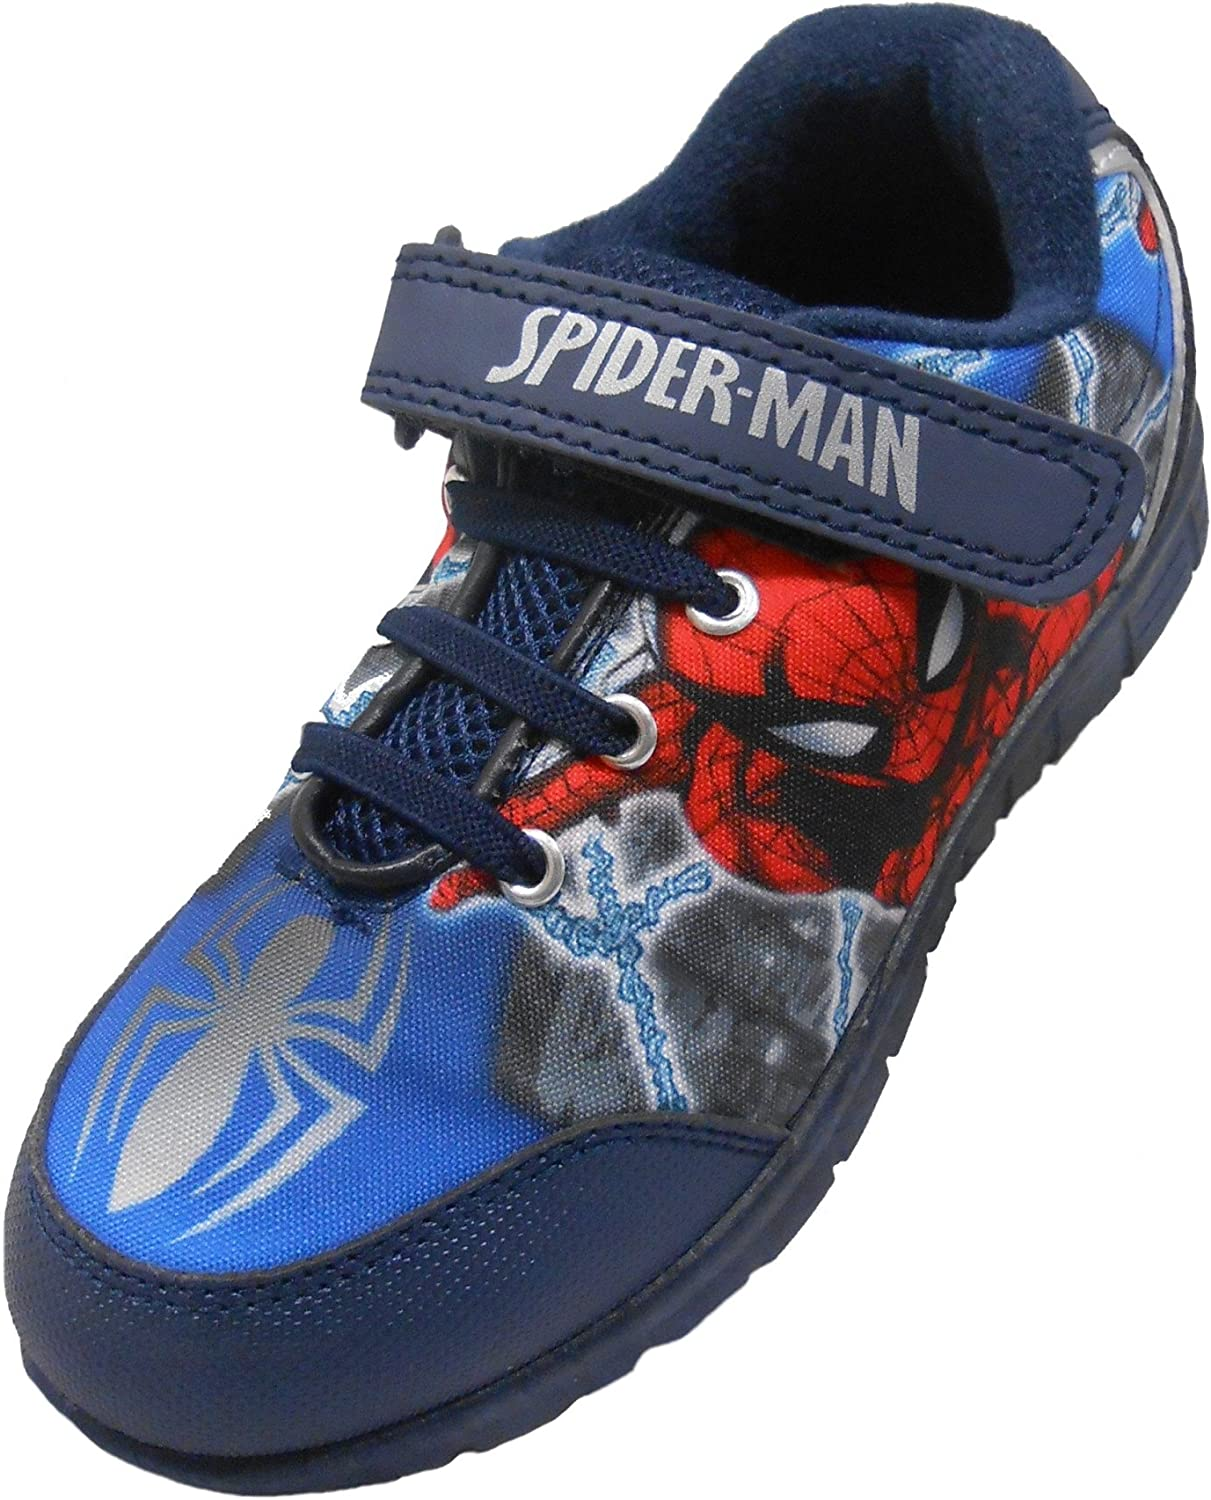 UK 7 W Lamb Spiderman Boys Spider Trainers Size USA 8